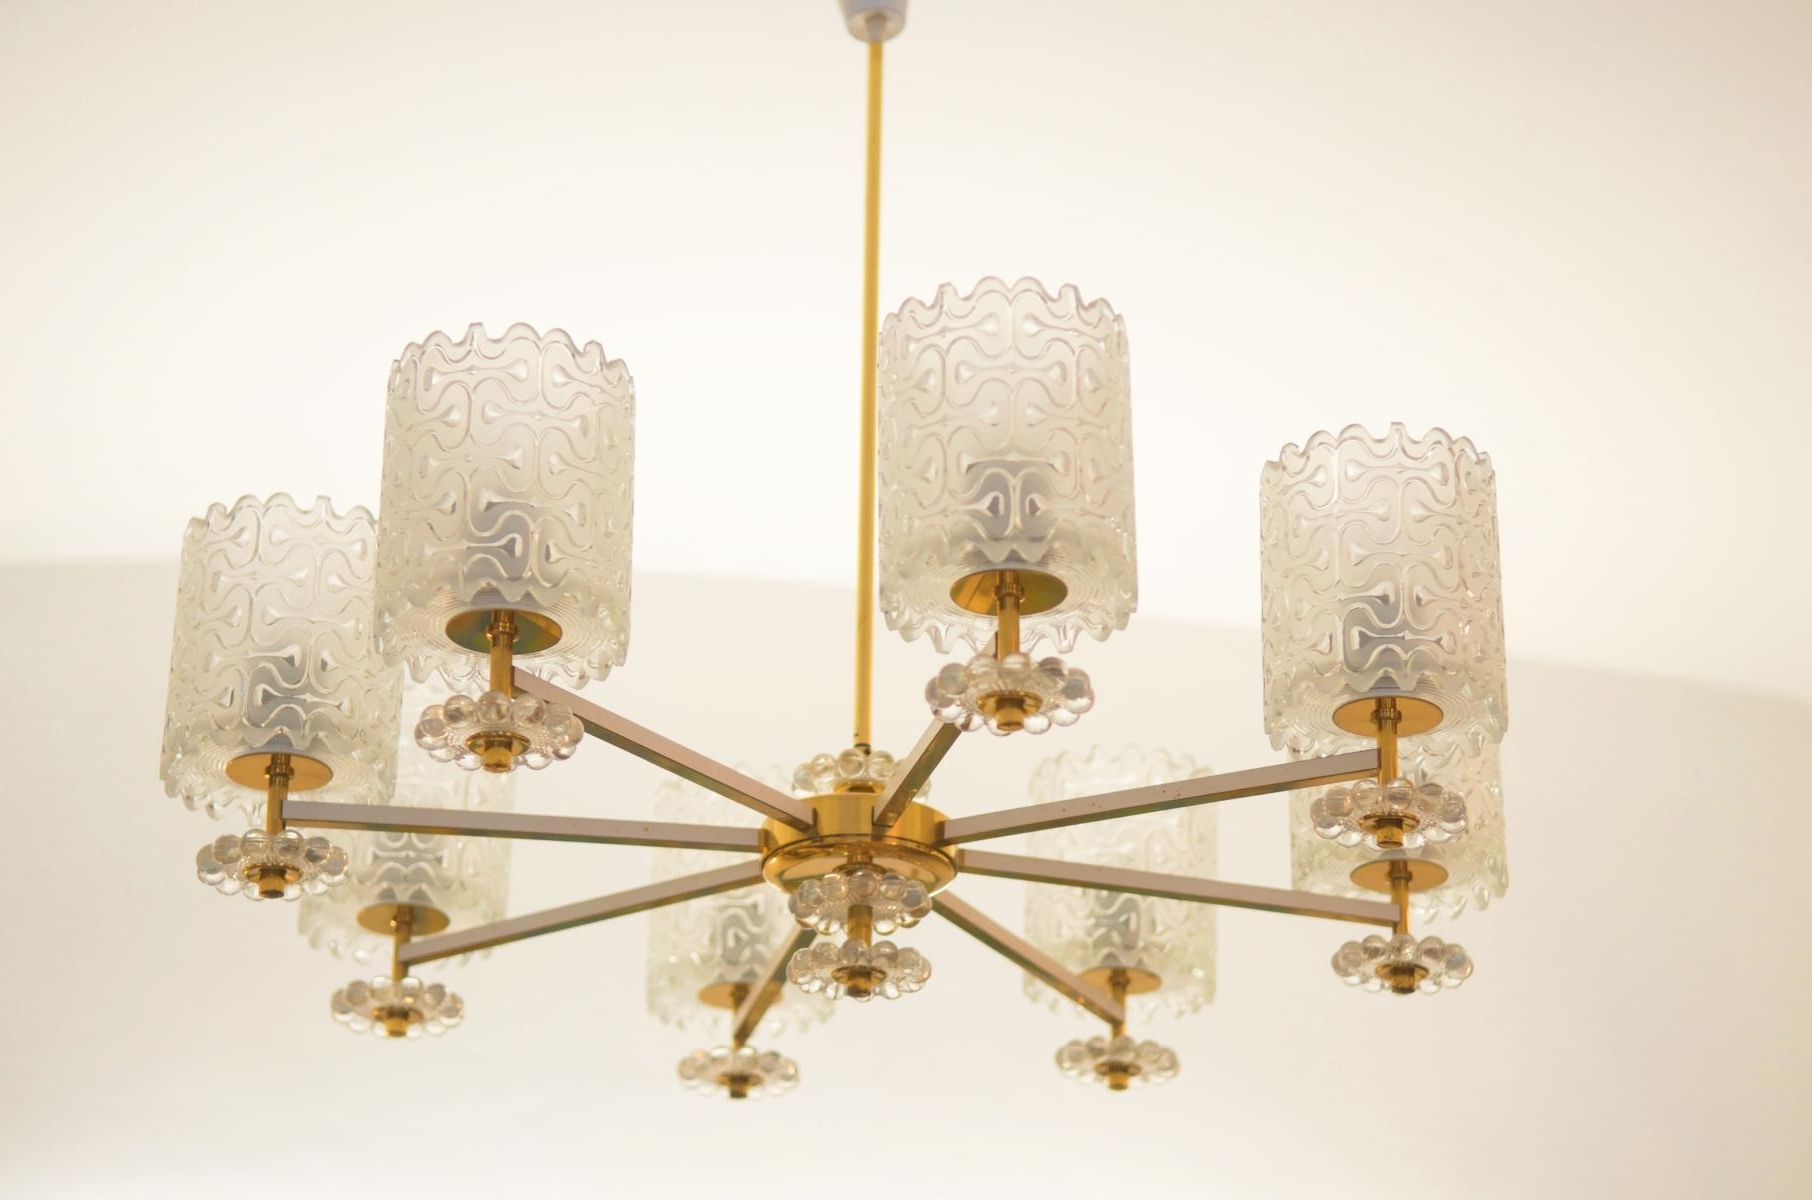 Brass And Glass Chandelier Inside 2019 Vintage Brass And Glass Chandelier From Austria, 1970S For Sale At (View 5 of 20)